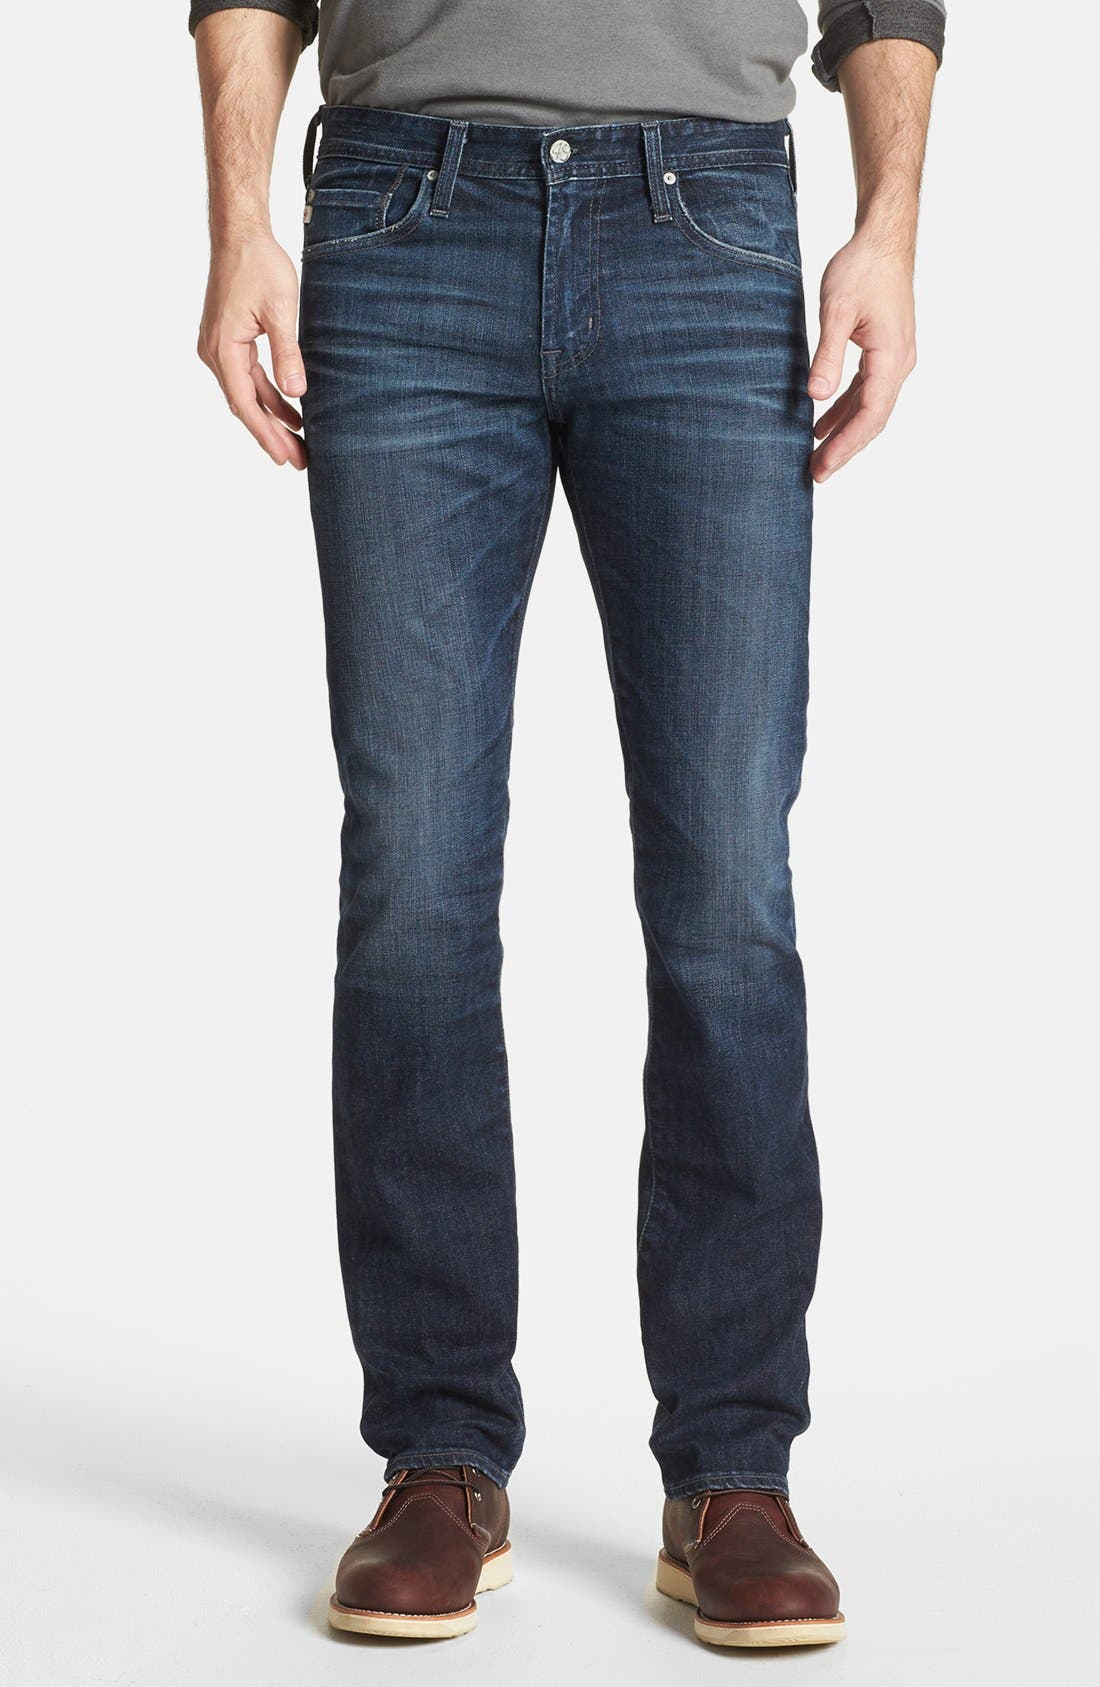 Alternate Image 1 Selected - AG 'Matchbox' Slim Fit Jeans (Six Years Cast)